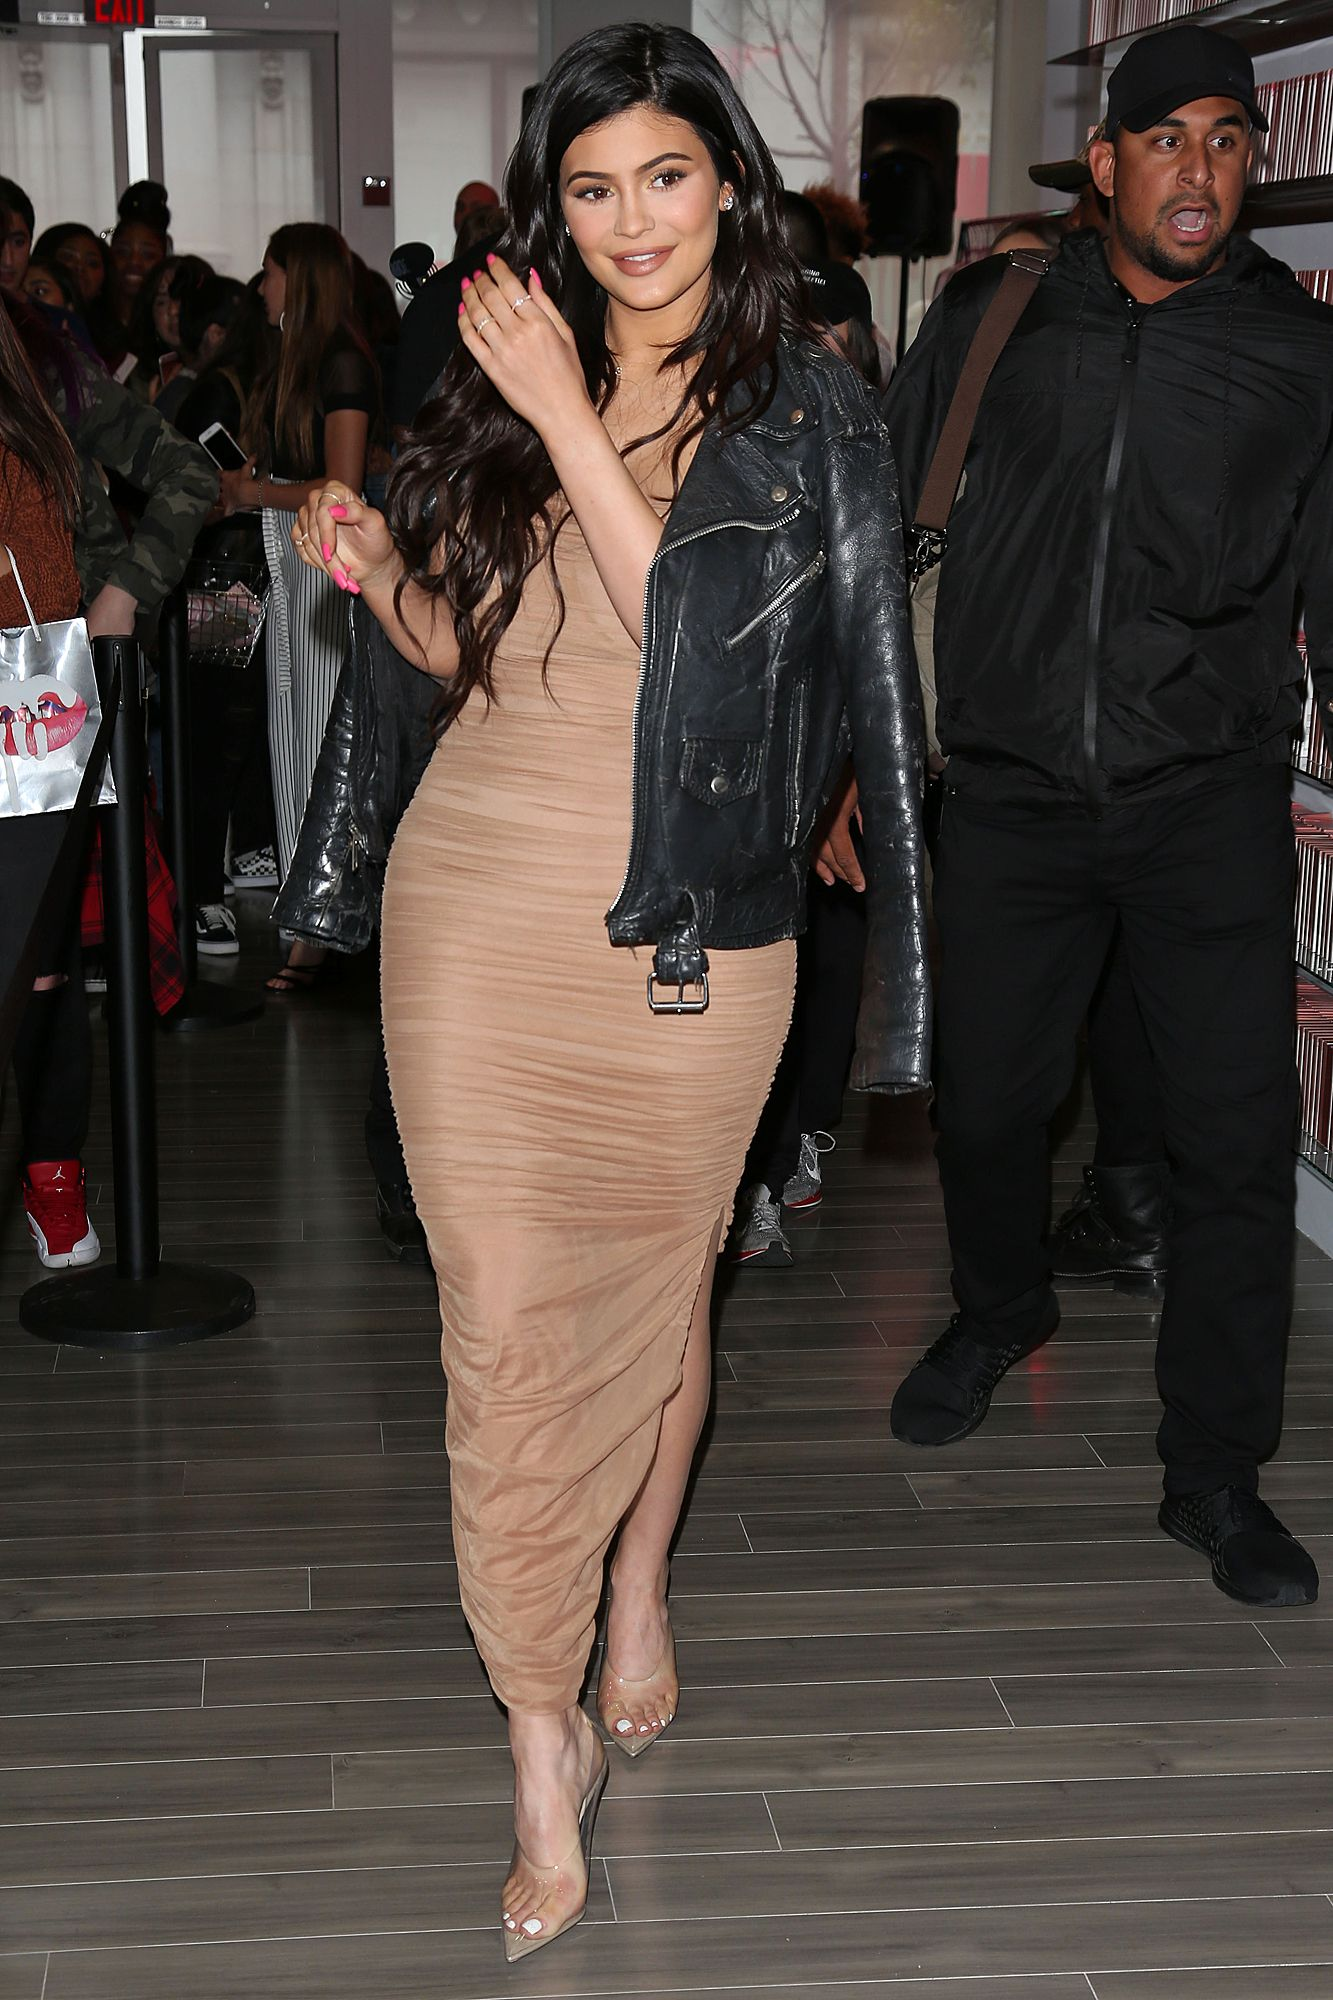 Kylie Jenner Wears Curve-Hugging Dress to Her San